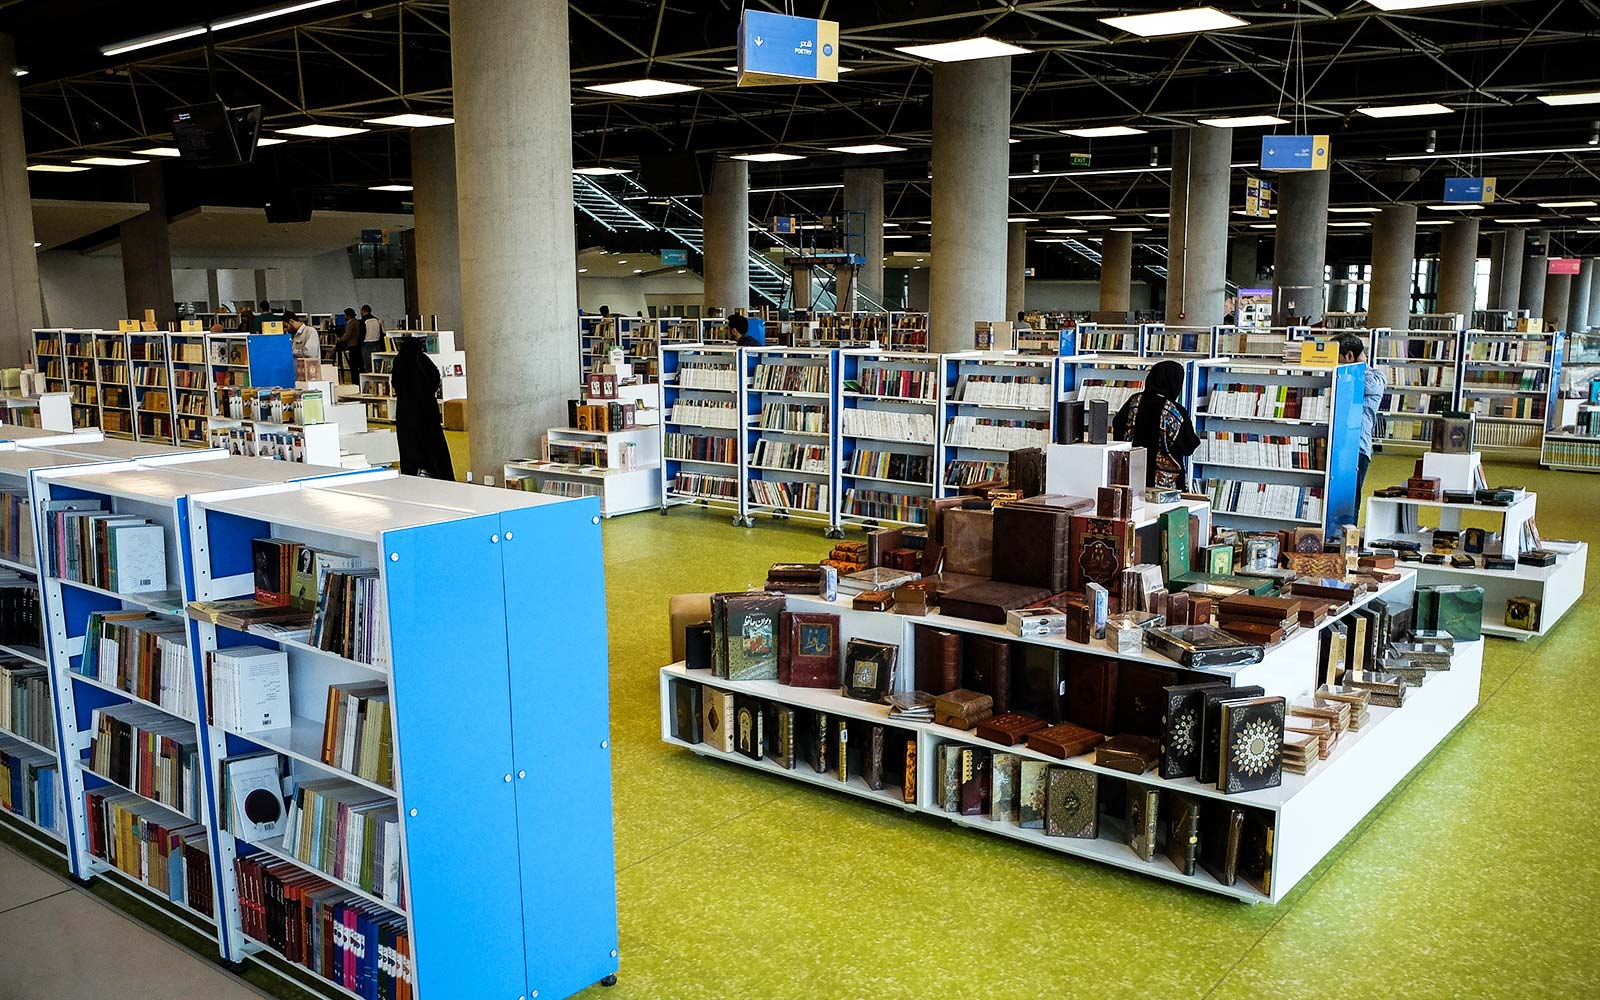 Iran's Enormous New Bookstore Competes to be the World's Biggest